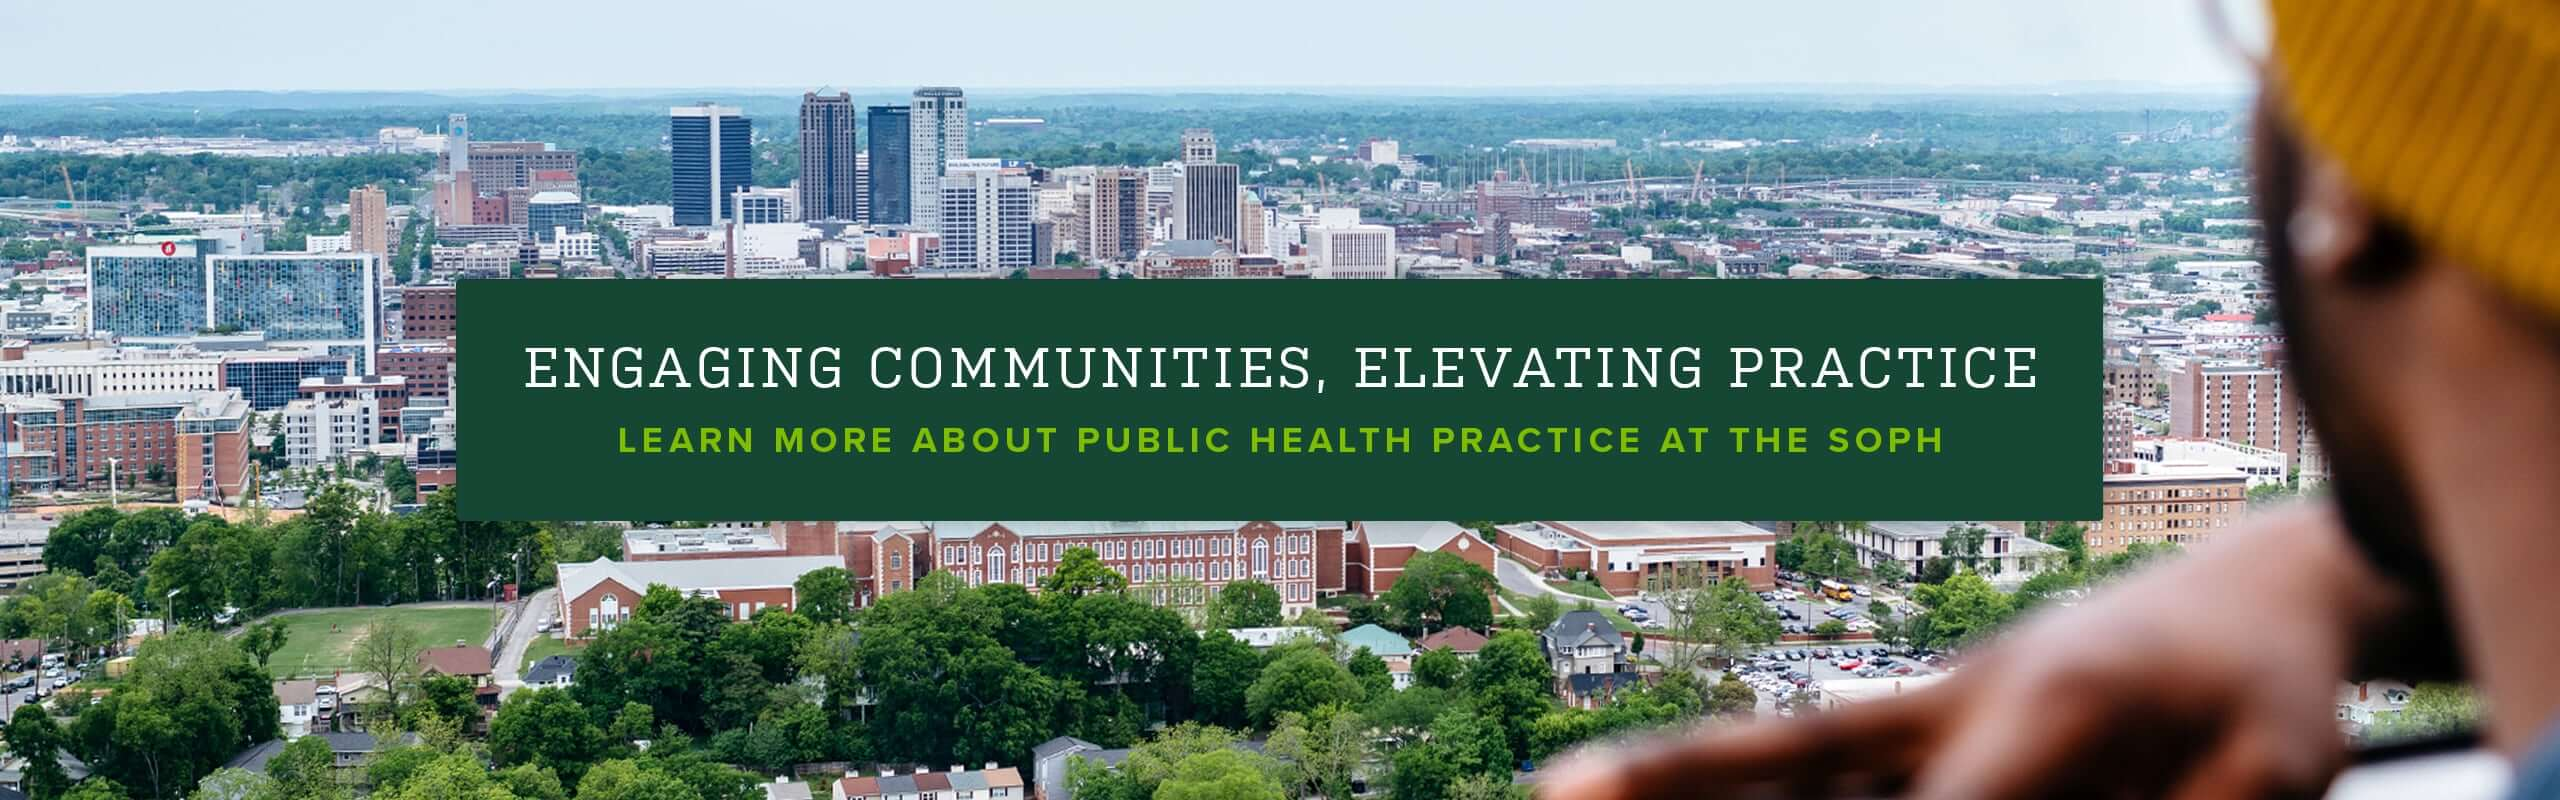 Engaging Communities, Elevating Practice: Learn more about public health practice at the SOPH.